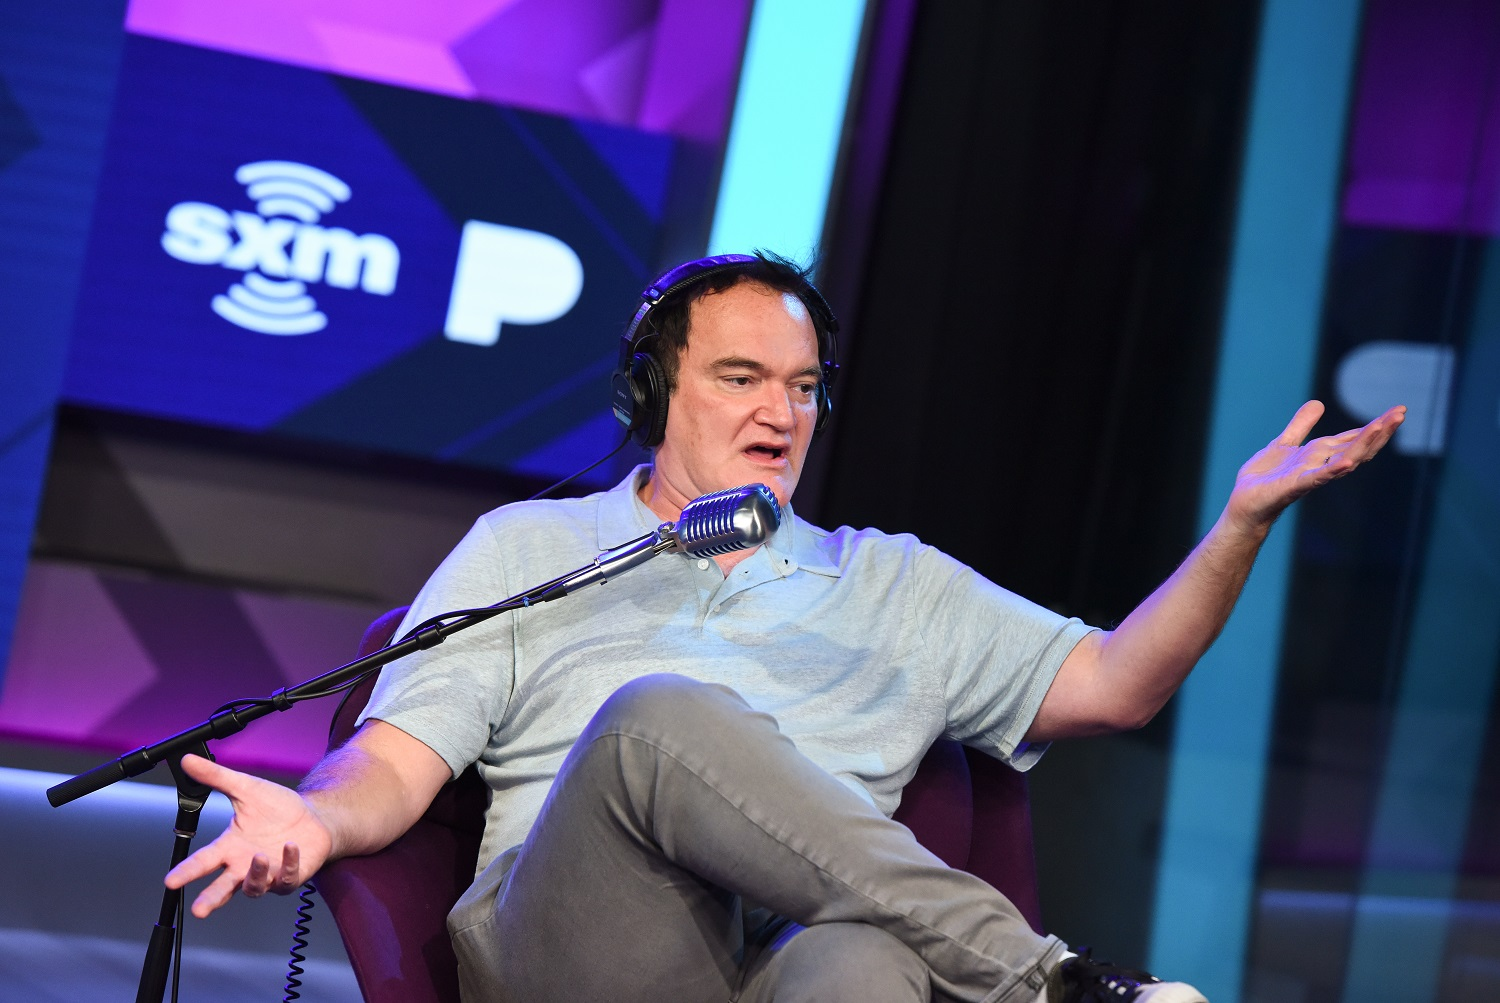 Quentin Tarantino sits in a chair and speaks into a microphone during an interview.